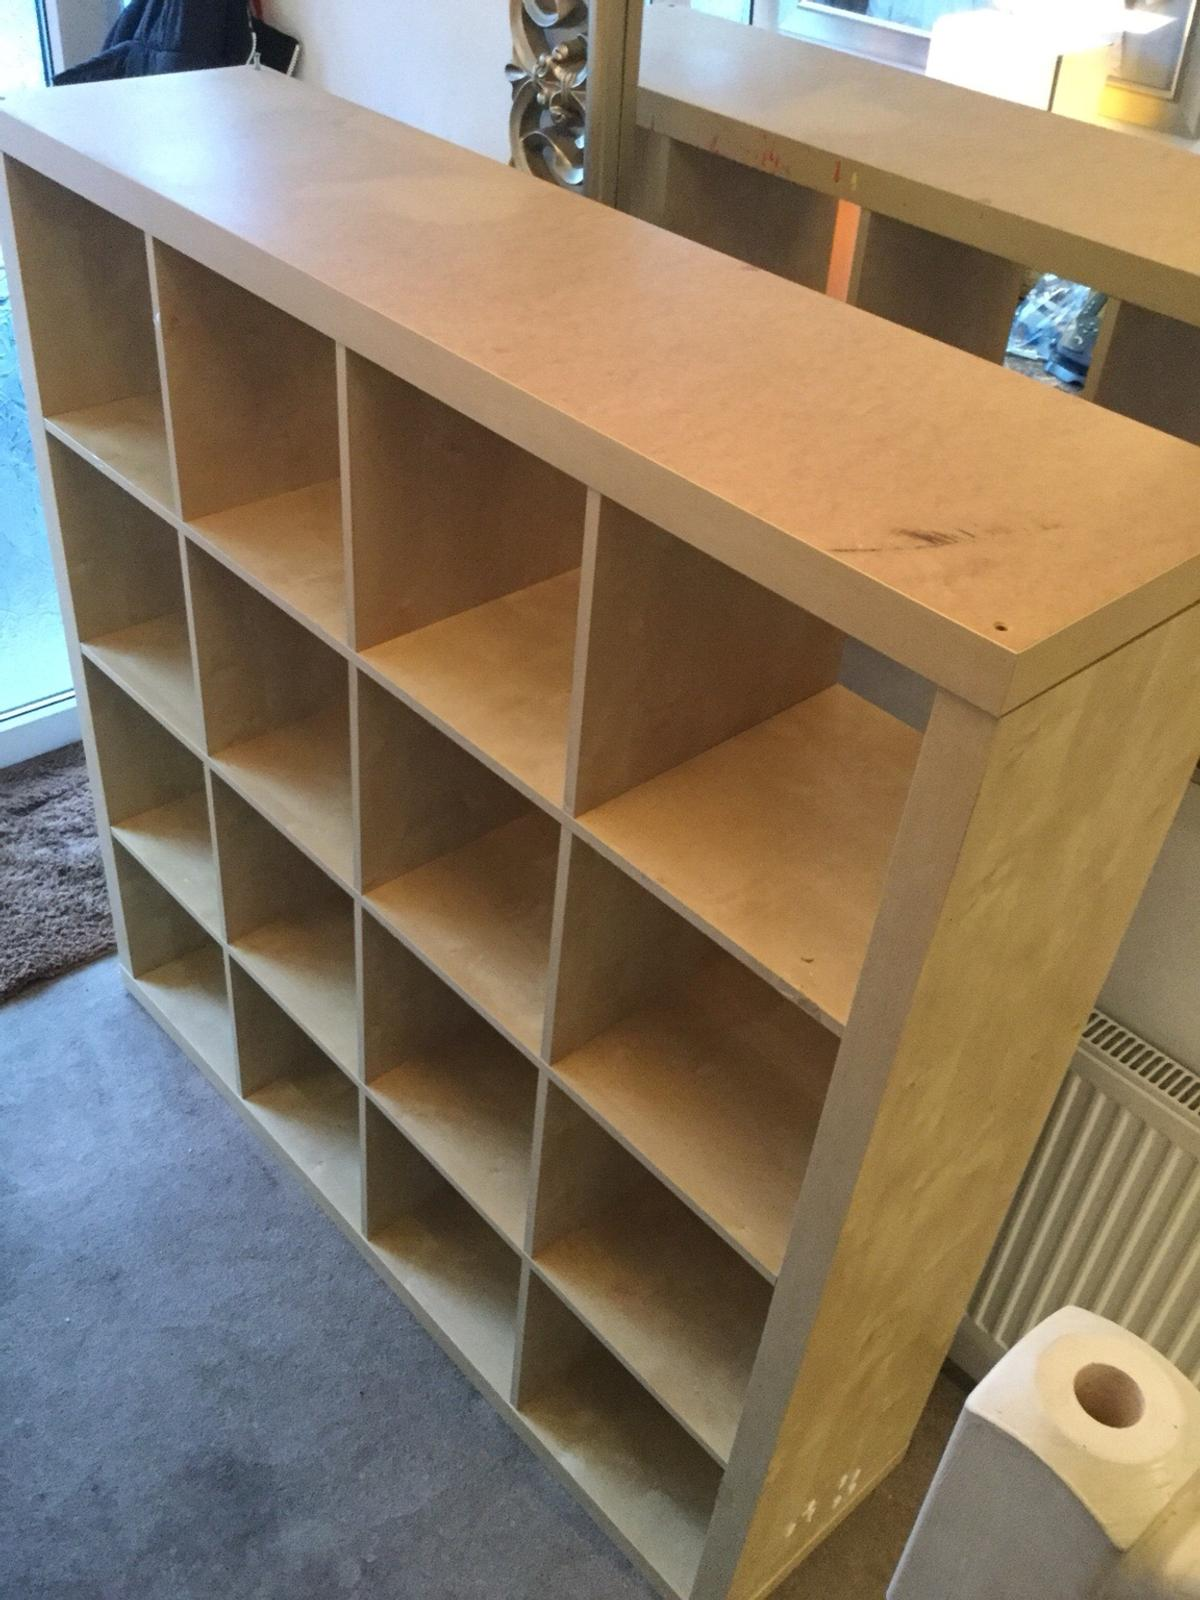 Ikea 16 cube storage unit